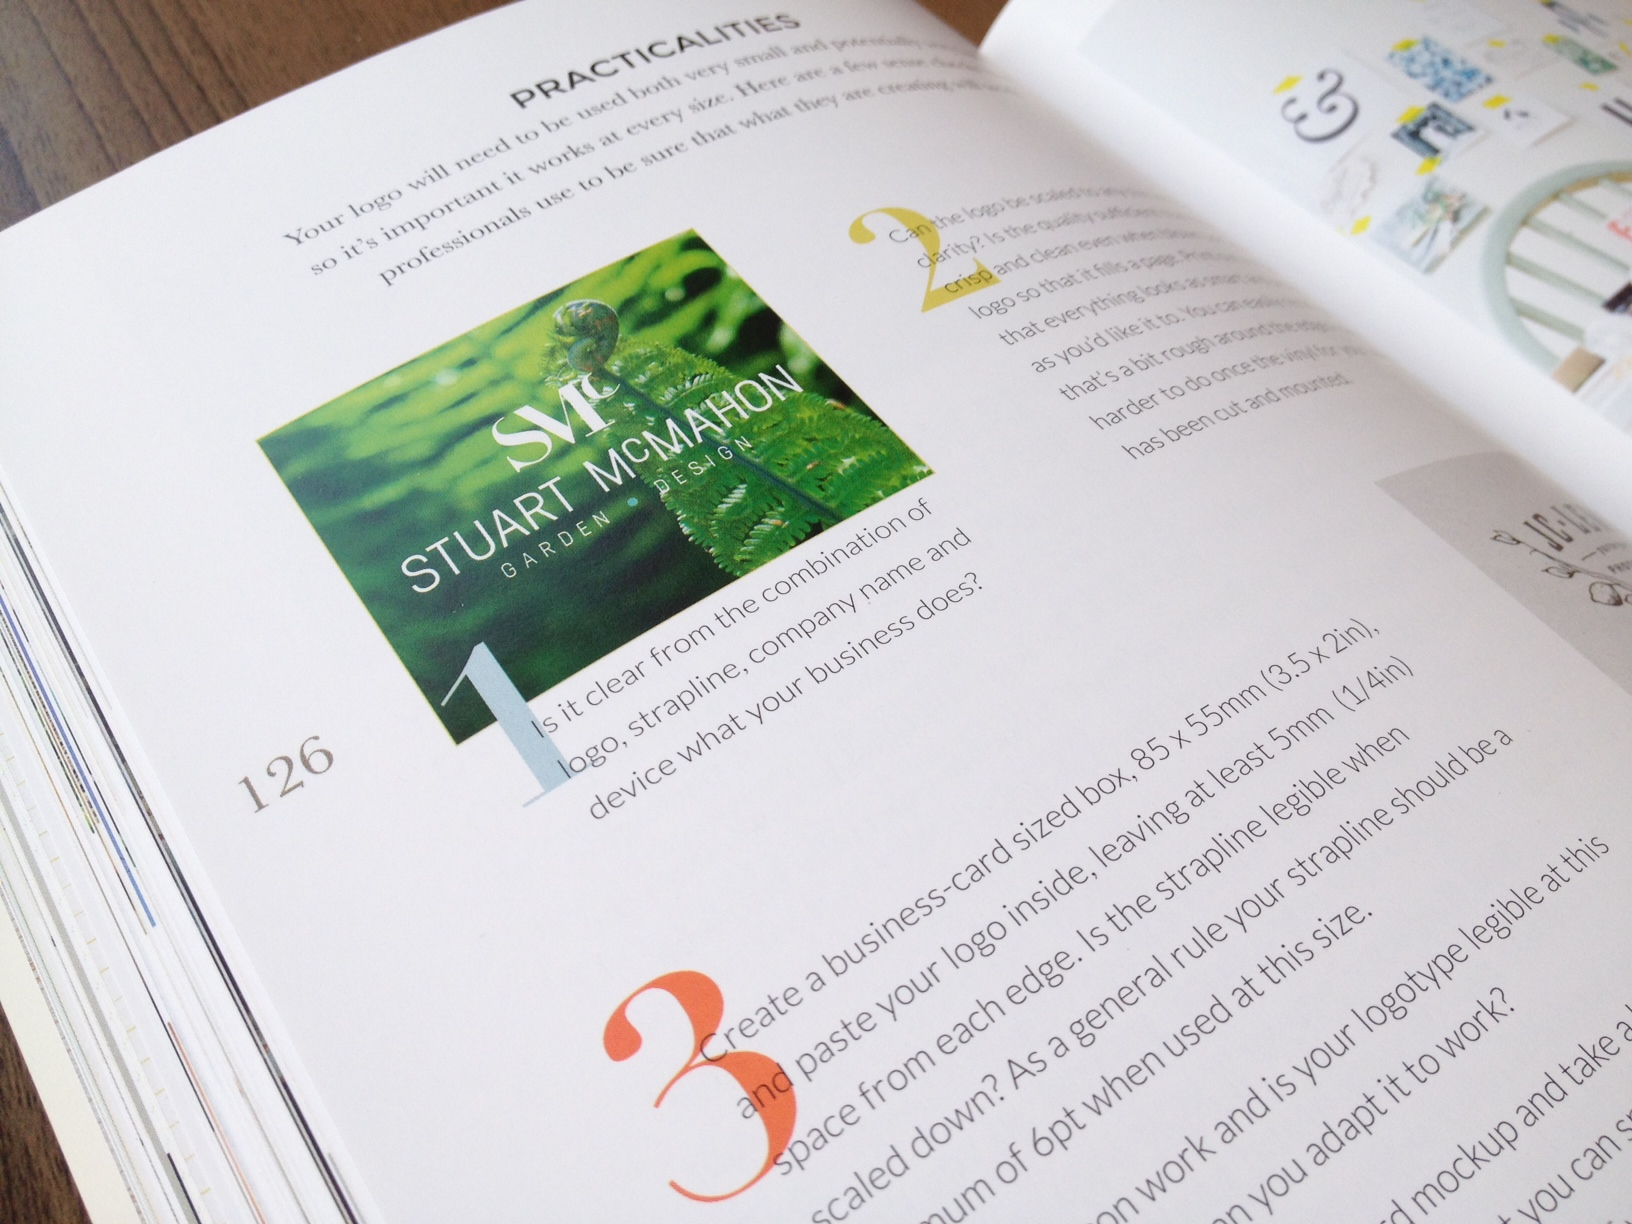 Ditto Creative is featured in branding book How To Style Your Brand